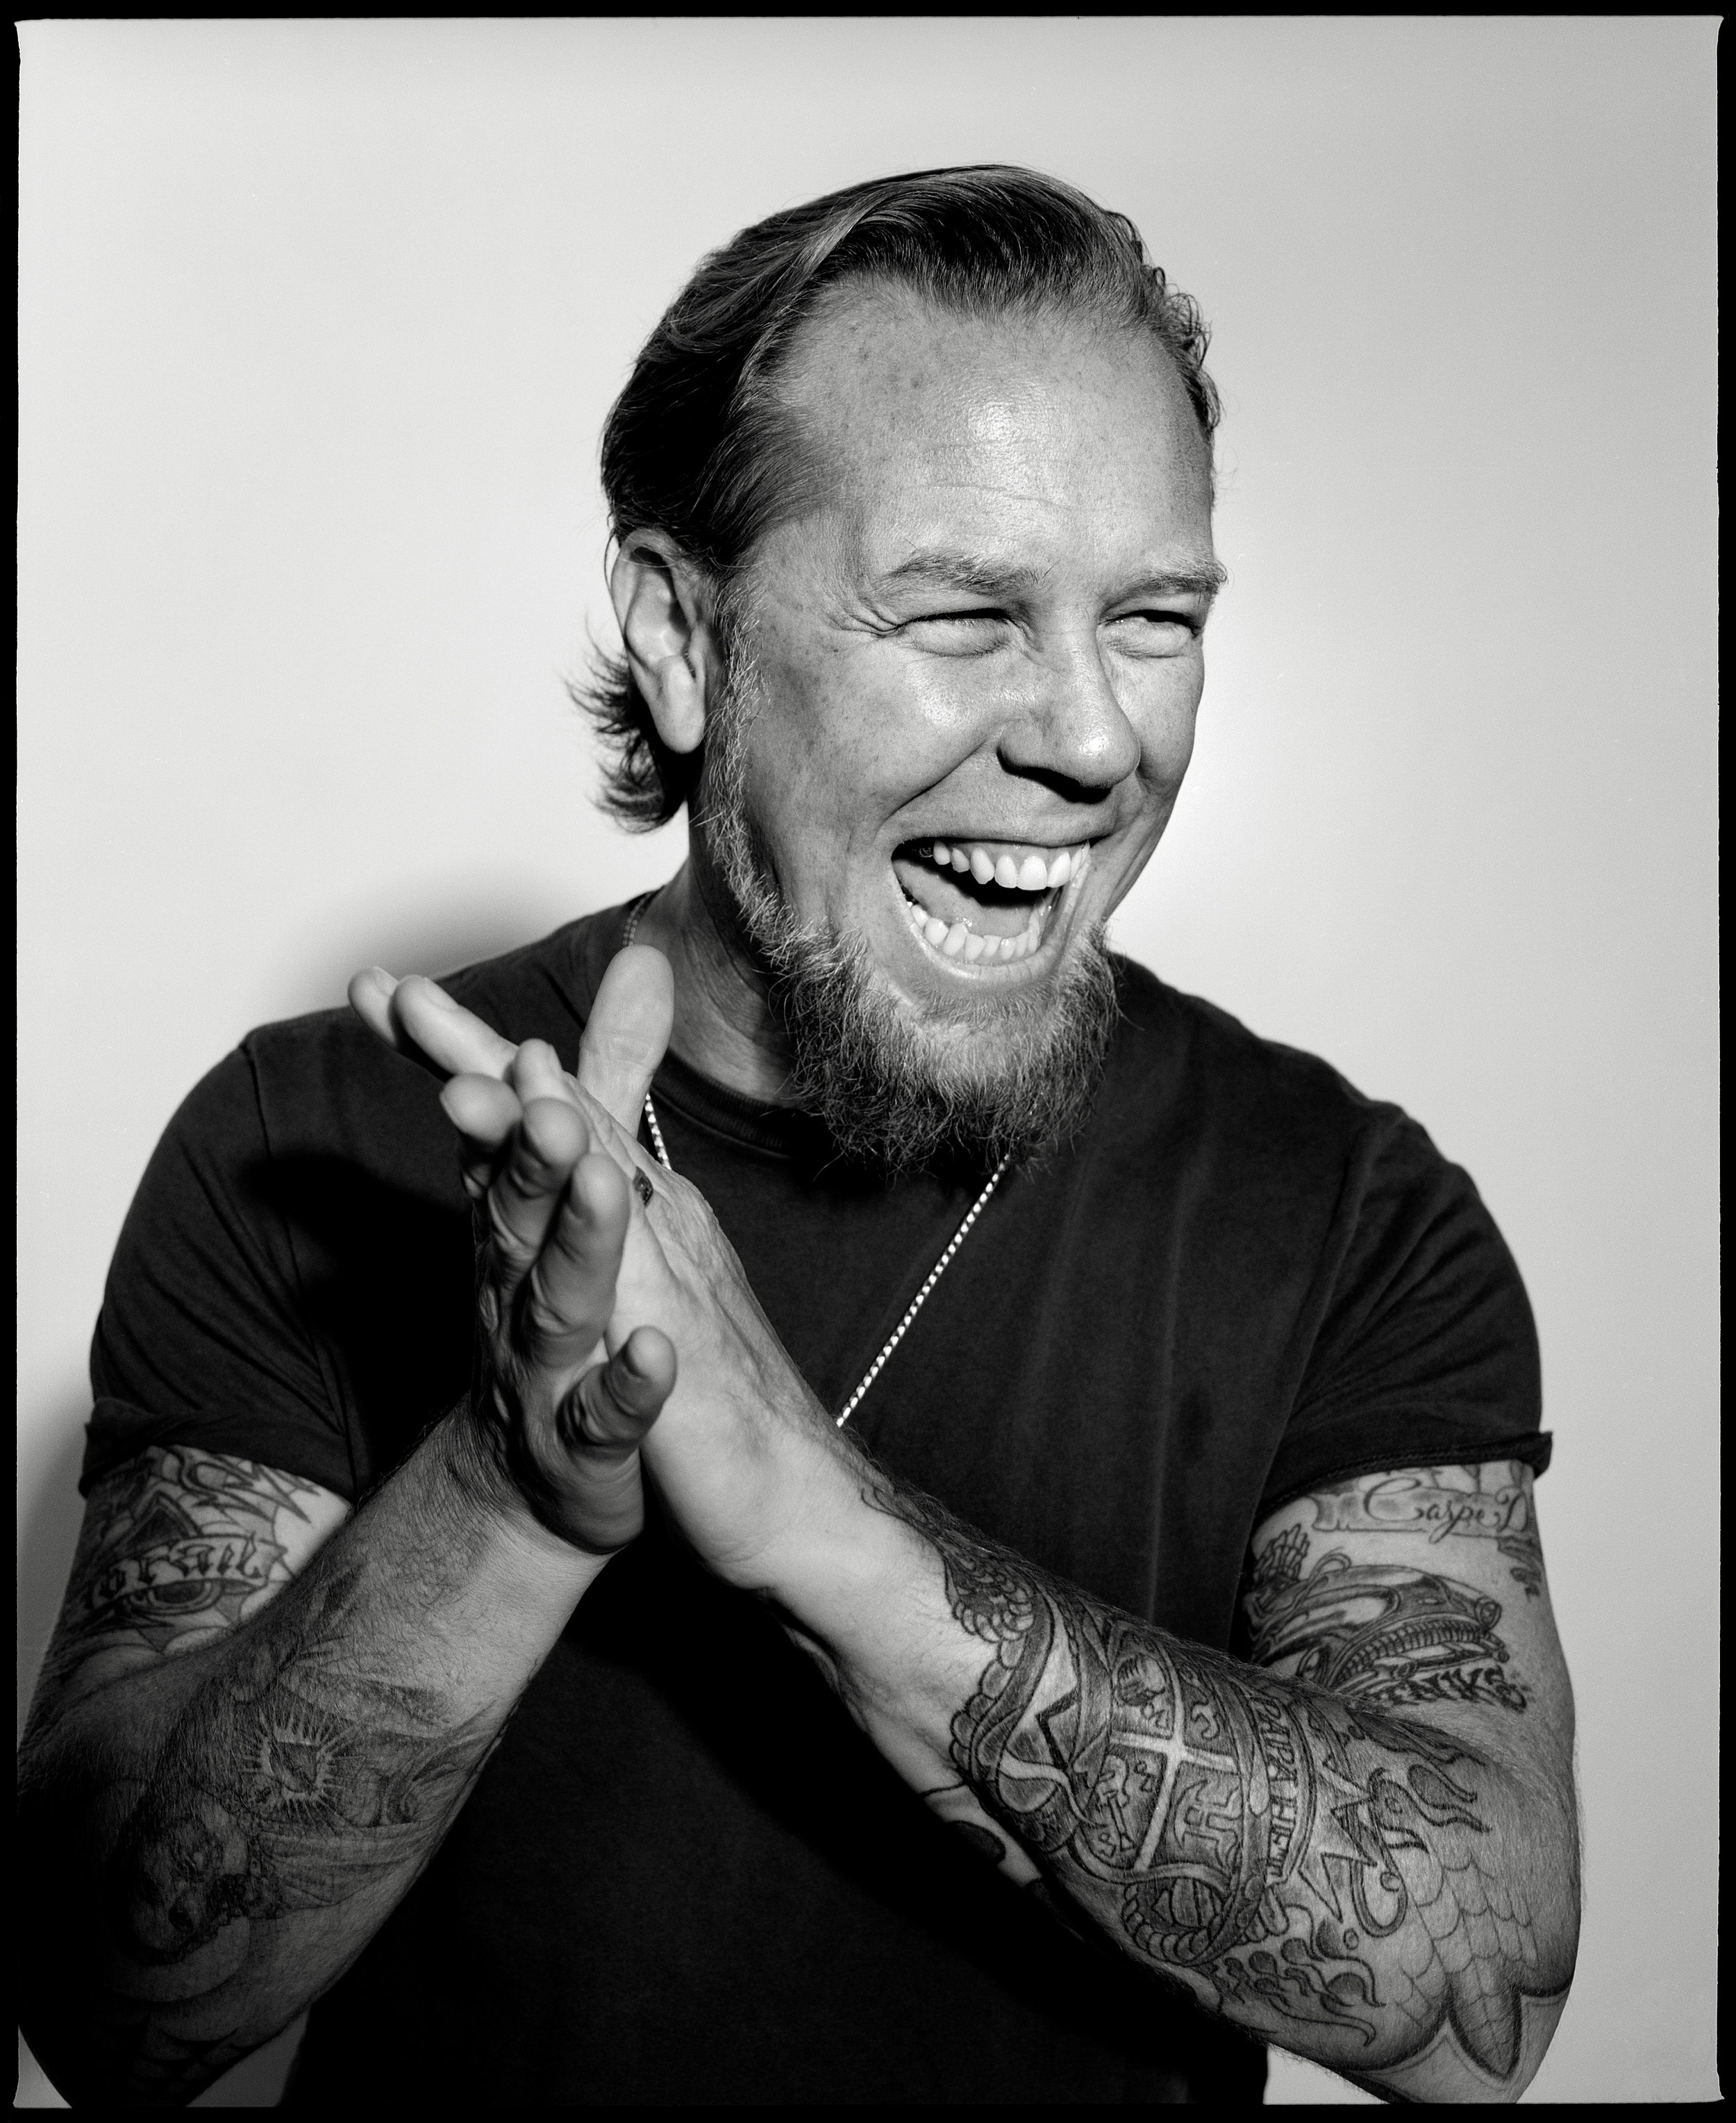 James Hetfield / Metallica